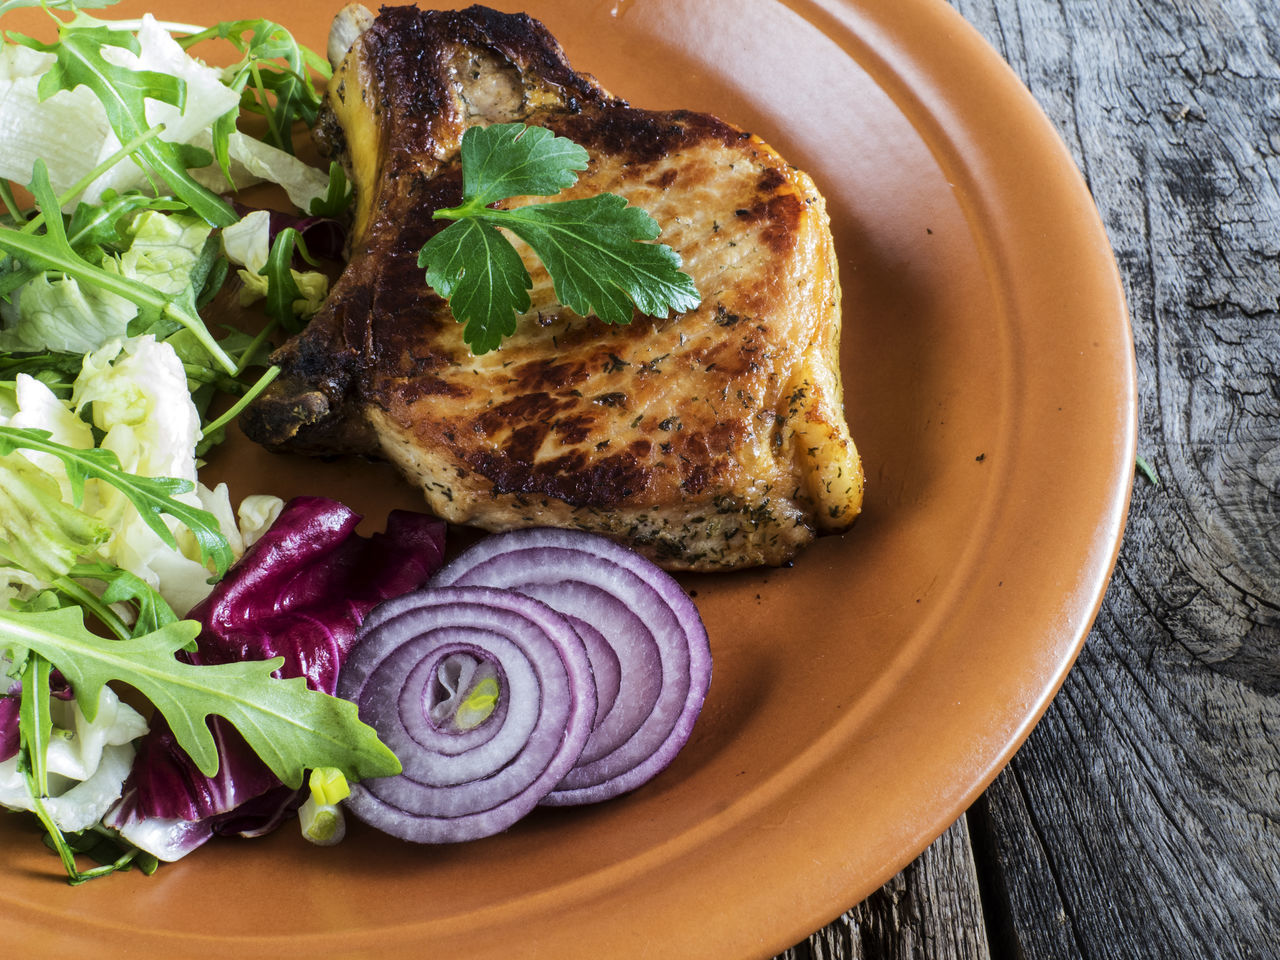 Roasted pork chop on a plate with a green salad, red onion on an old wooden weathered table Chop Close-up Food Food And Drink Freshness Green Healthy Eating High Angle View Indoors  Leaf No People Old Onion Plate Pork Ready-to-eat Relaxing Roasted Salad Table Vegetable Weathered Wooden